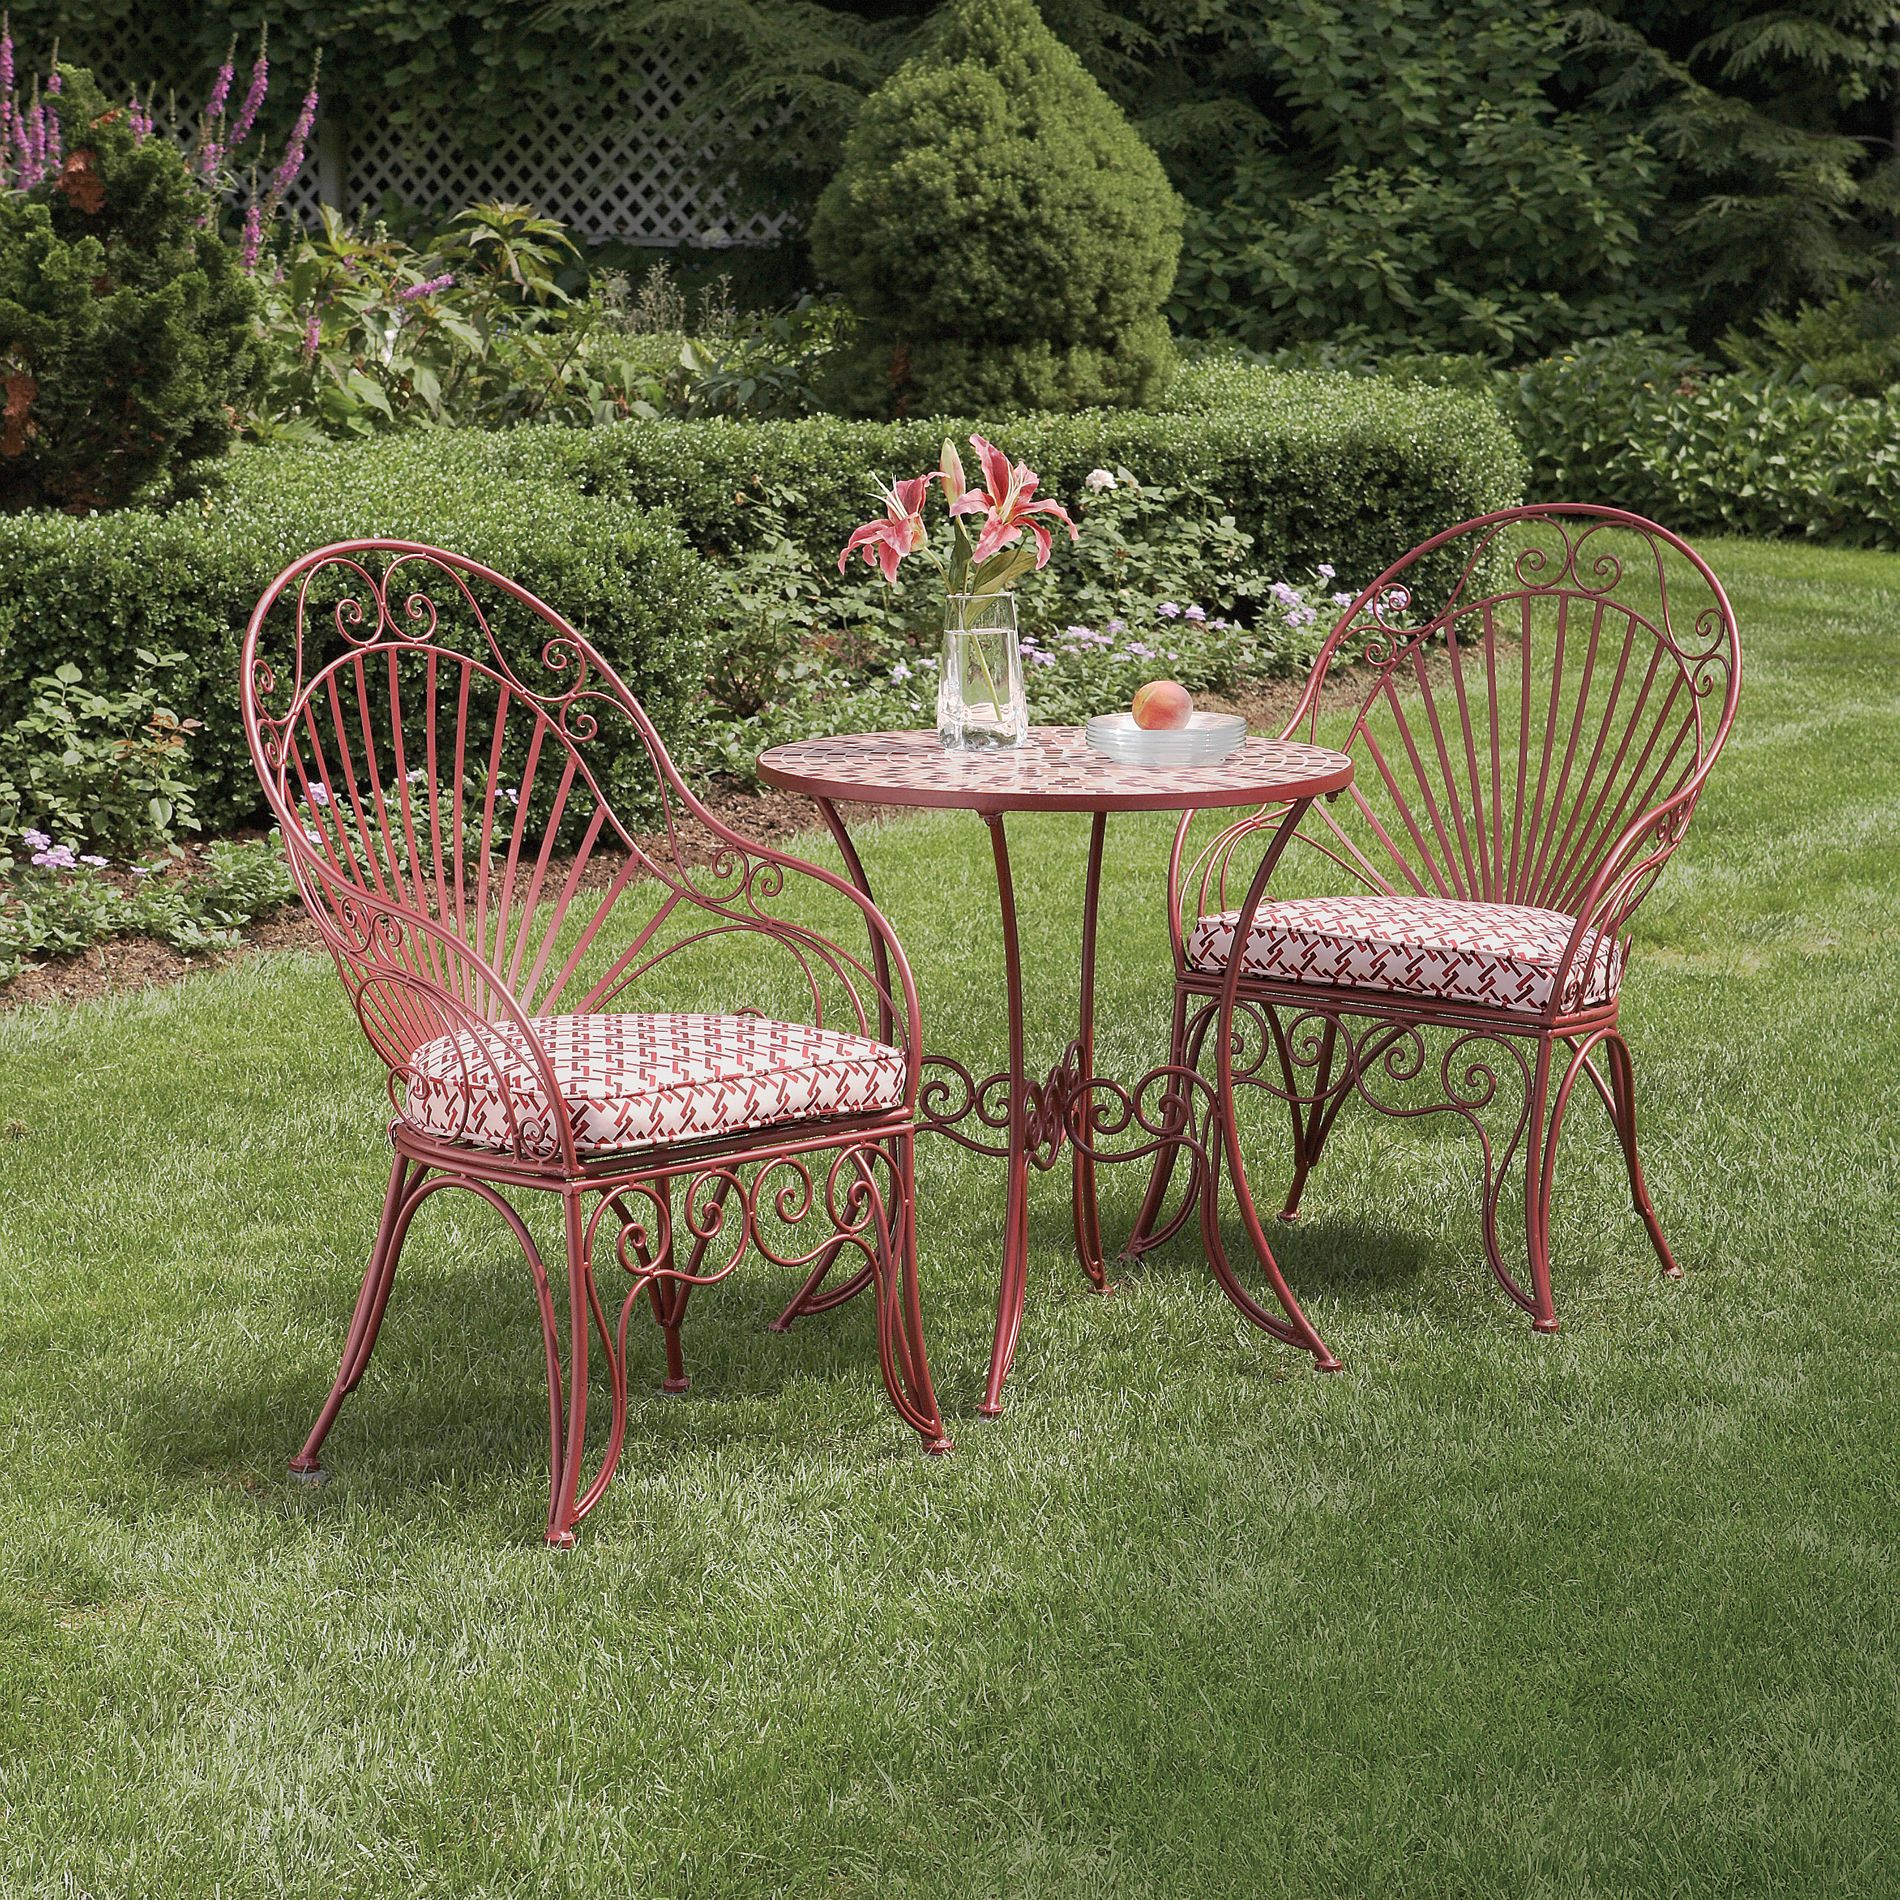 Garden Oasis - L-BS299SST-1 - Wrought Iron Bistro Set with ... on Outdoor Living Iron Mosaic id=85033